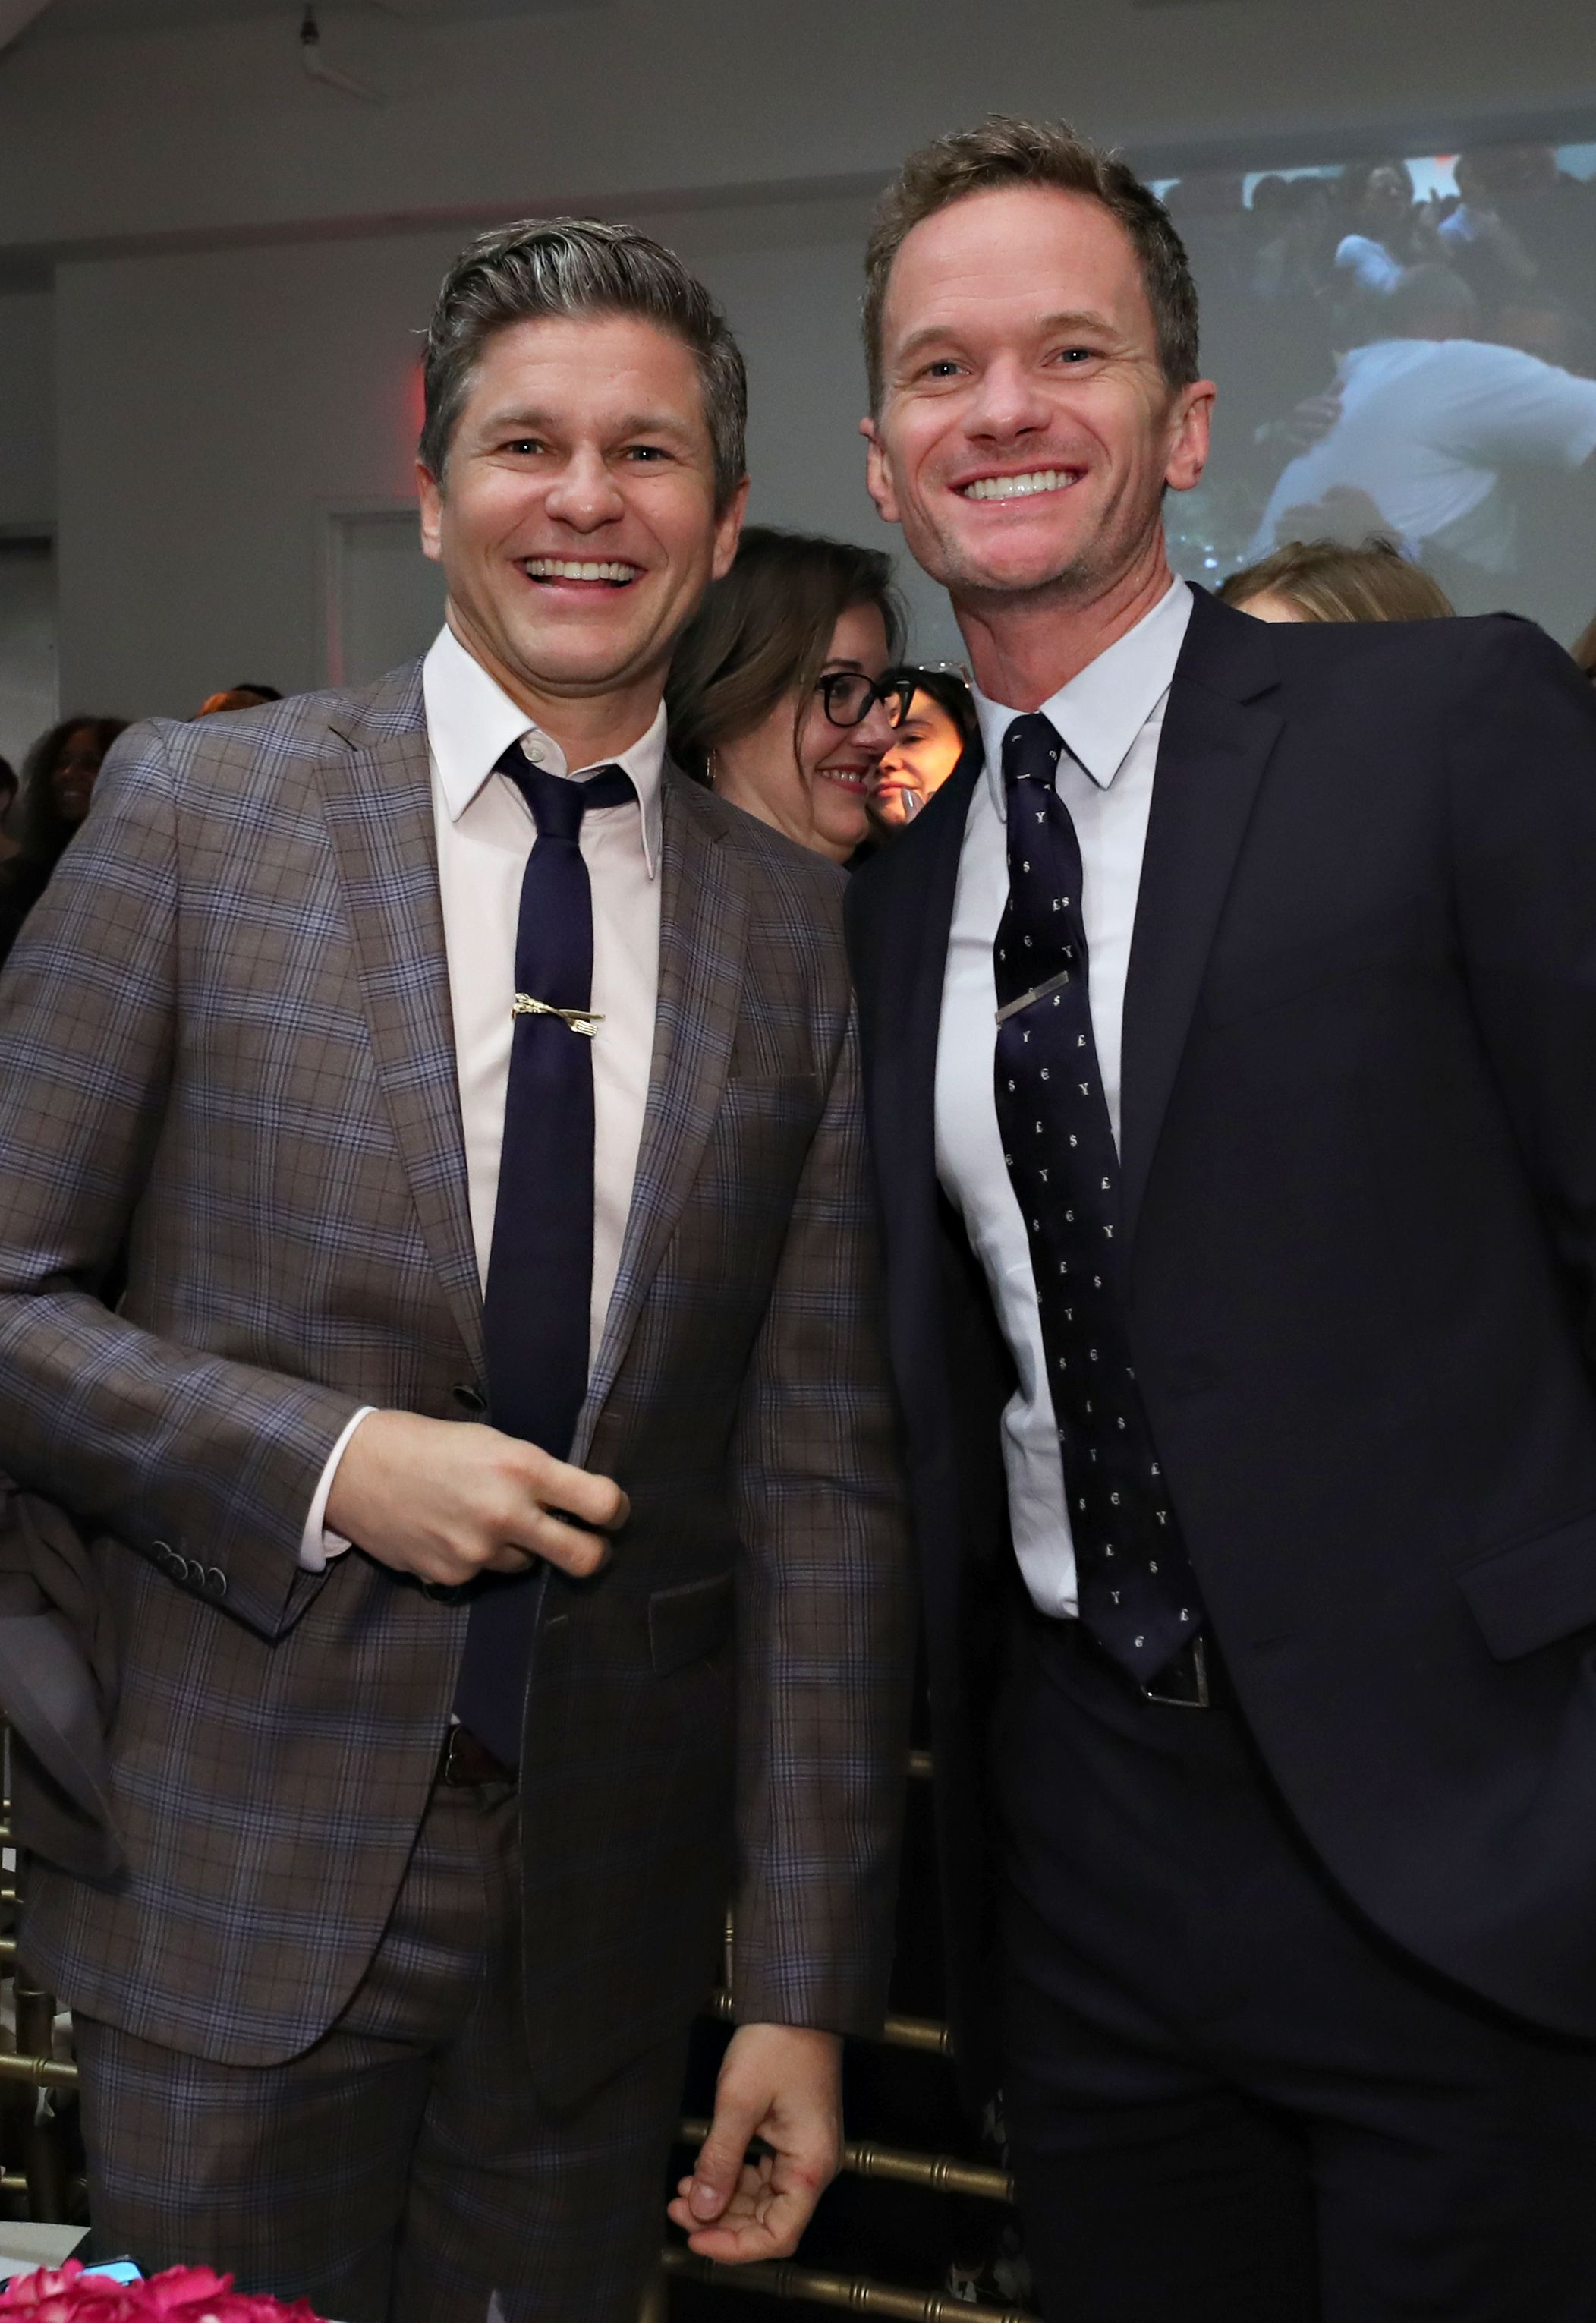 David Burtka and Neil Patrick Harris at the  Chefs For Kids' Cancer event on March 12, 2019, in New York City | Photo: Cindy Ord/Getty Images